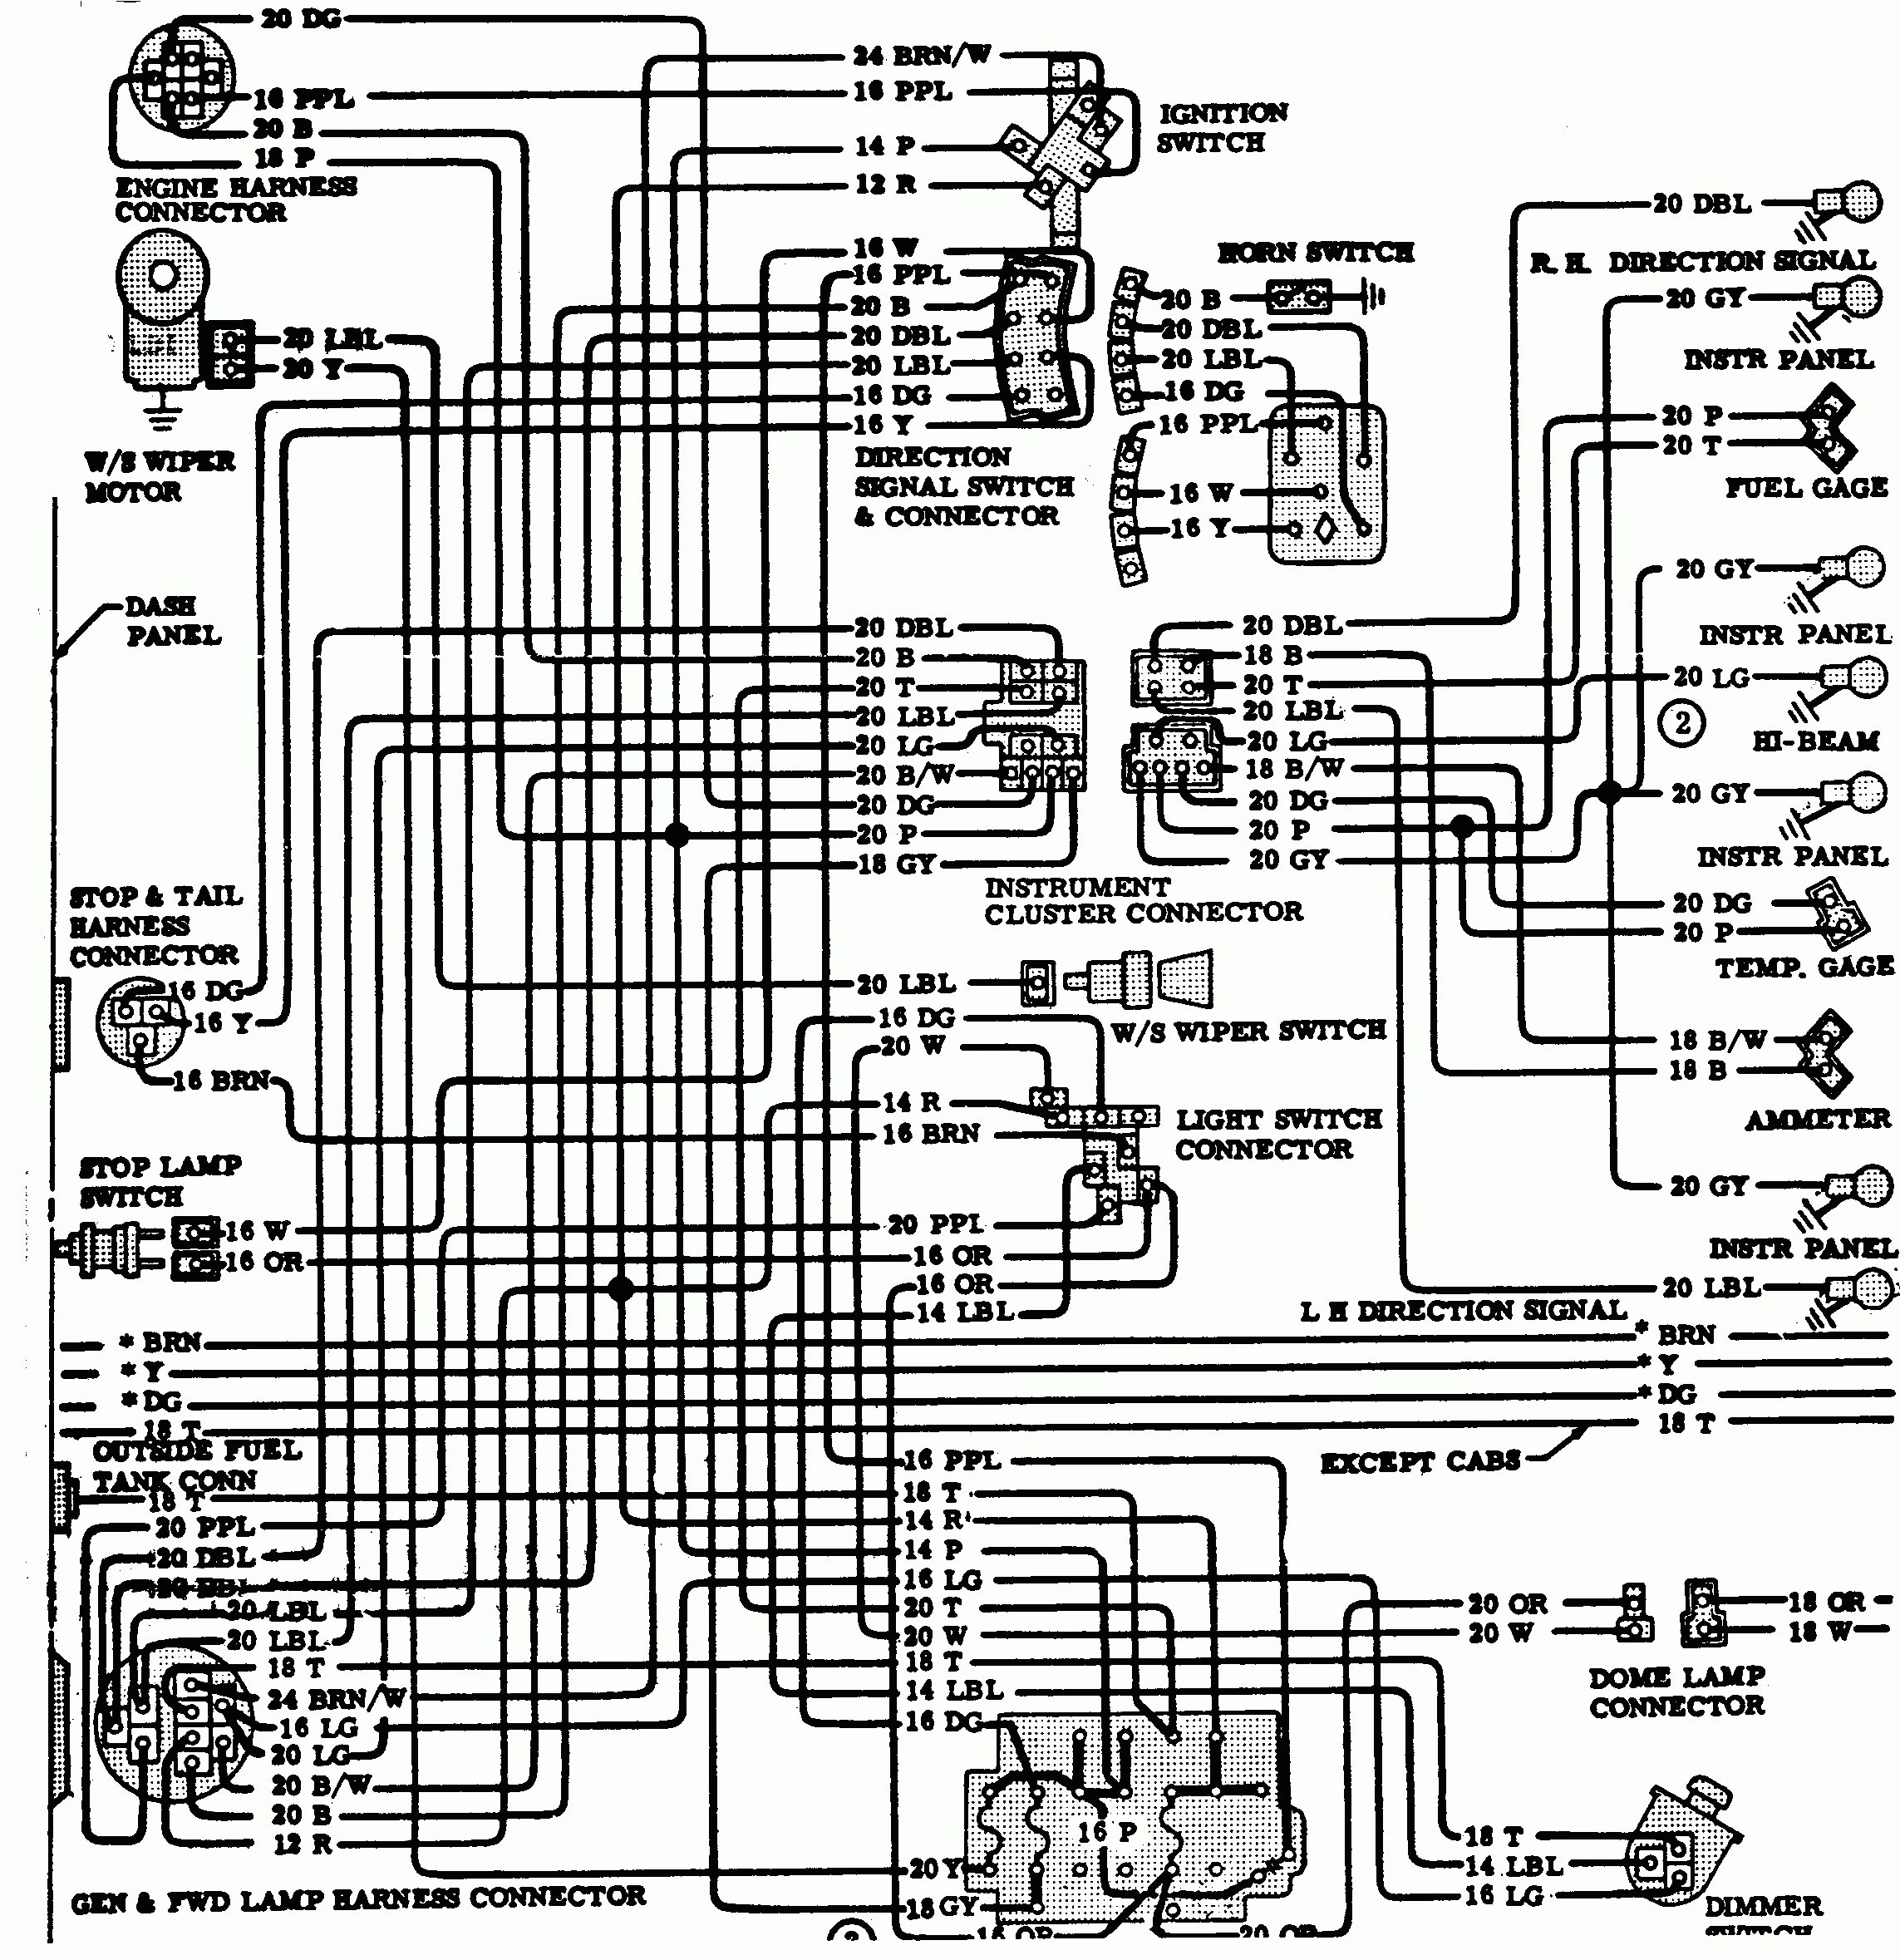 1981 Corvette Fuse Box Diagram Electrical Schematics 85 Chevy Elcamino Wiring Lzk Gallery Wire Data Schema U2022